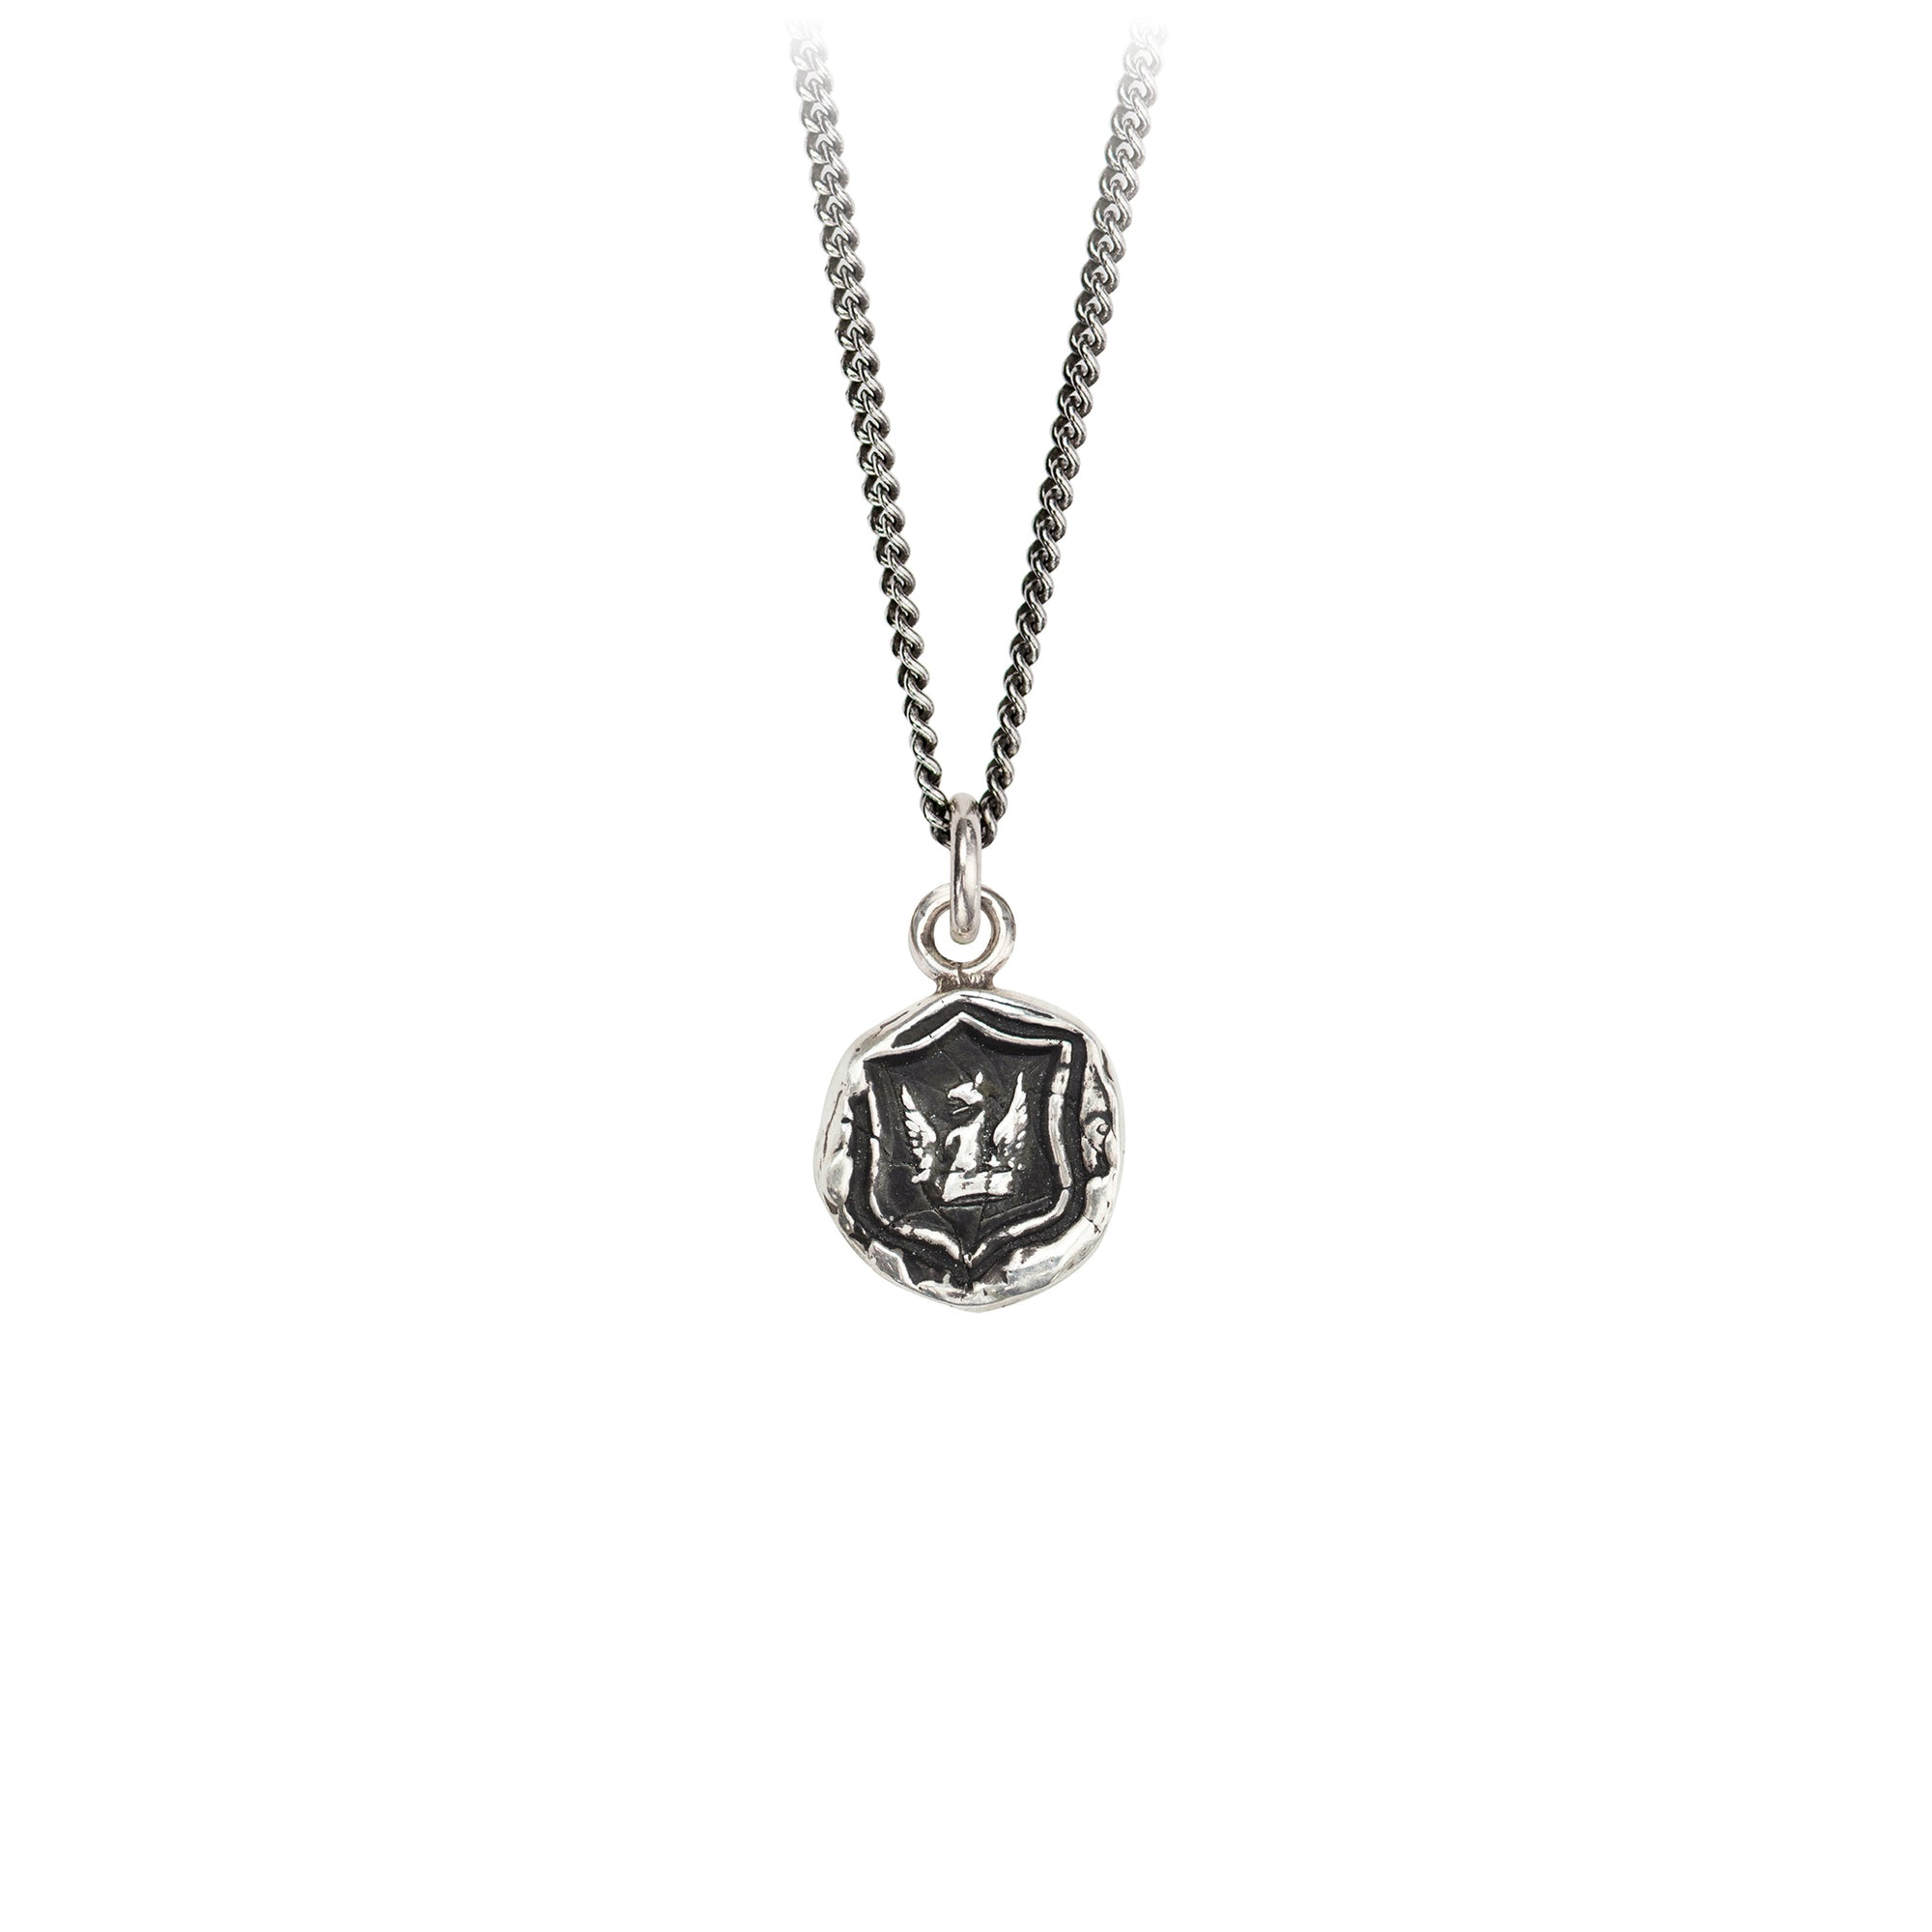 Pyrrha Bravery & Protection Talisman Necklace Silver